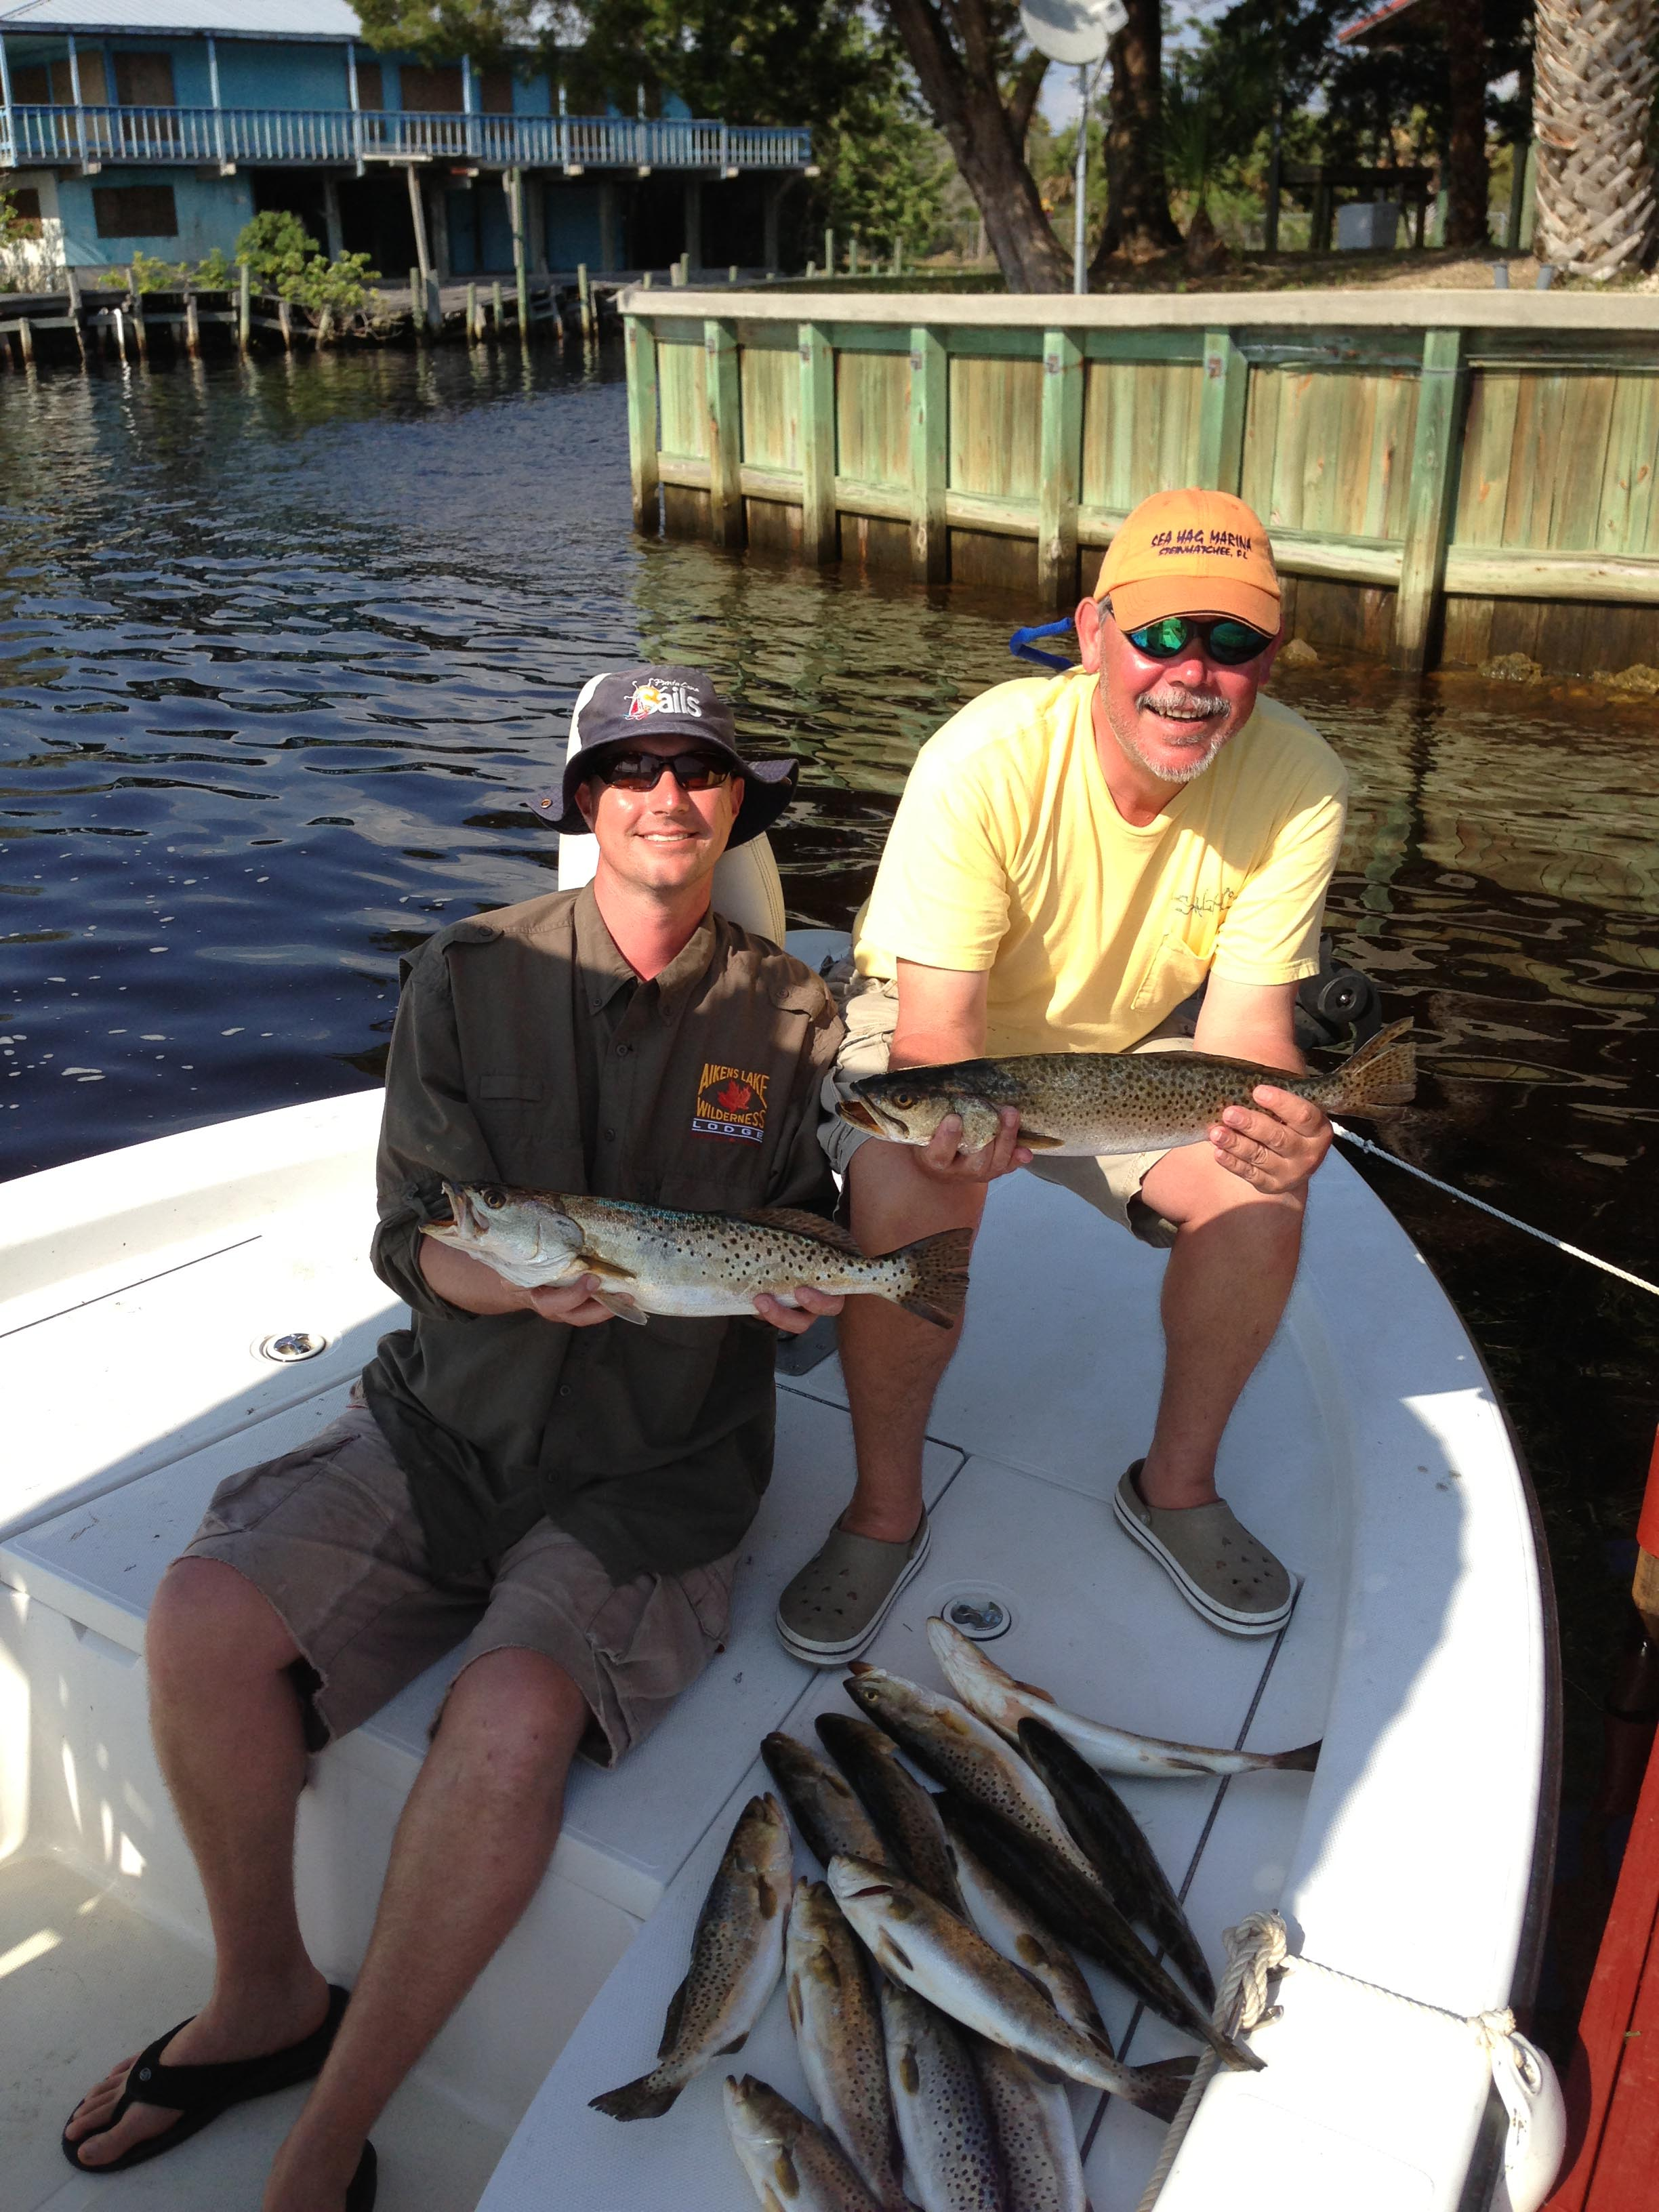 April 2013 Fishing Report And Forecast Sea Hag Marina The Cobia 17 Boat Wire Diagram Coby Andrew From Texas Oklahoma Fished With Team Roscoe To Find These